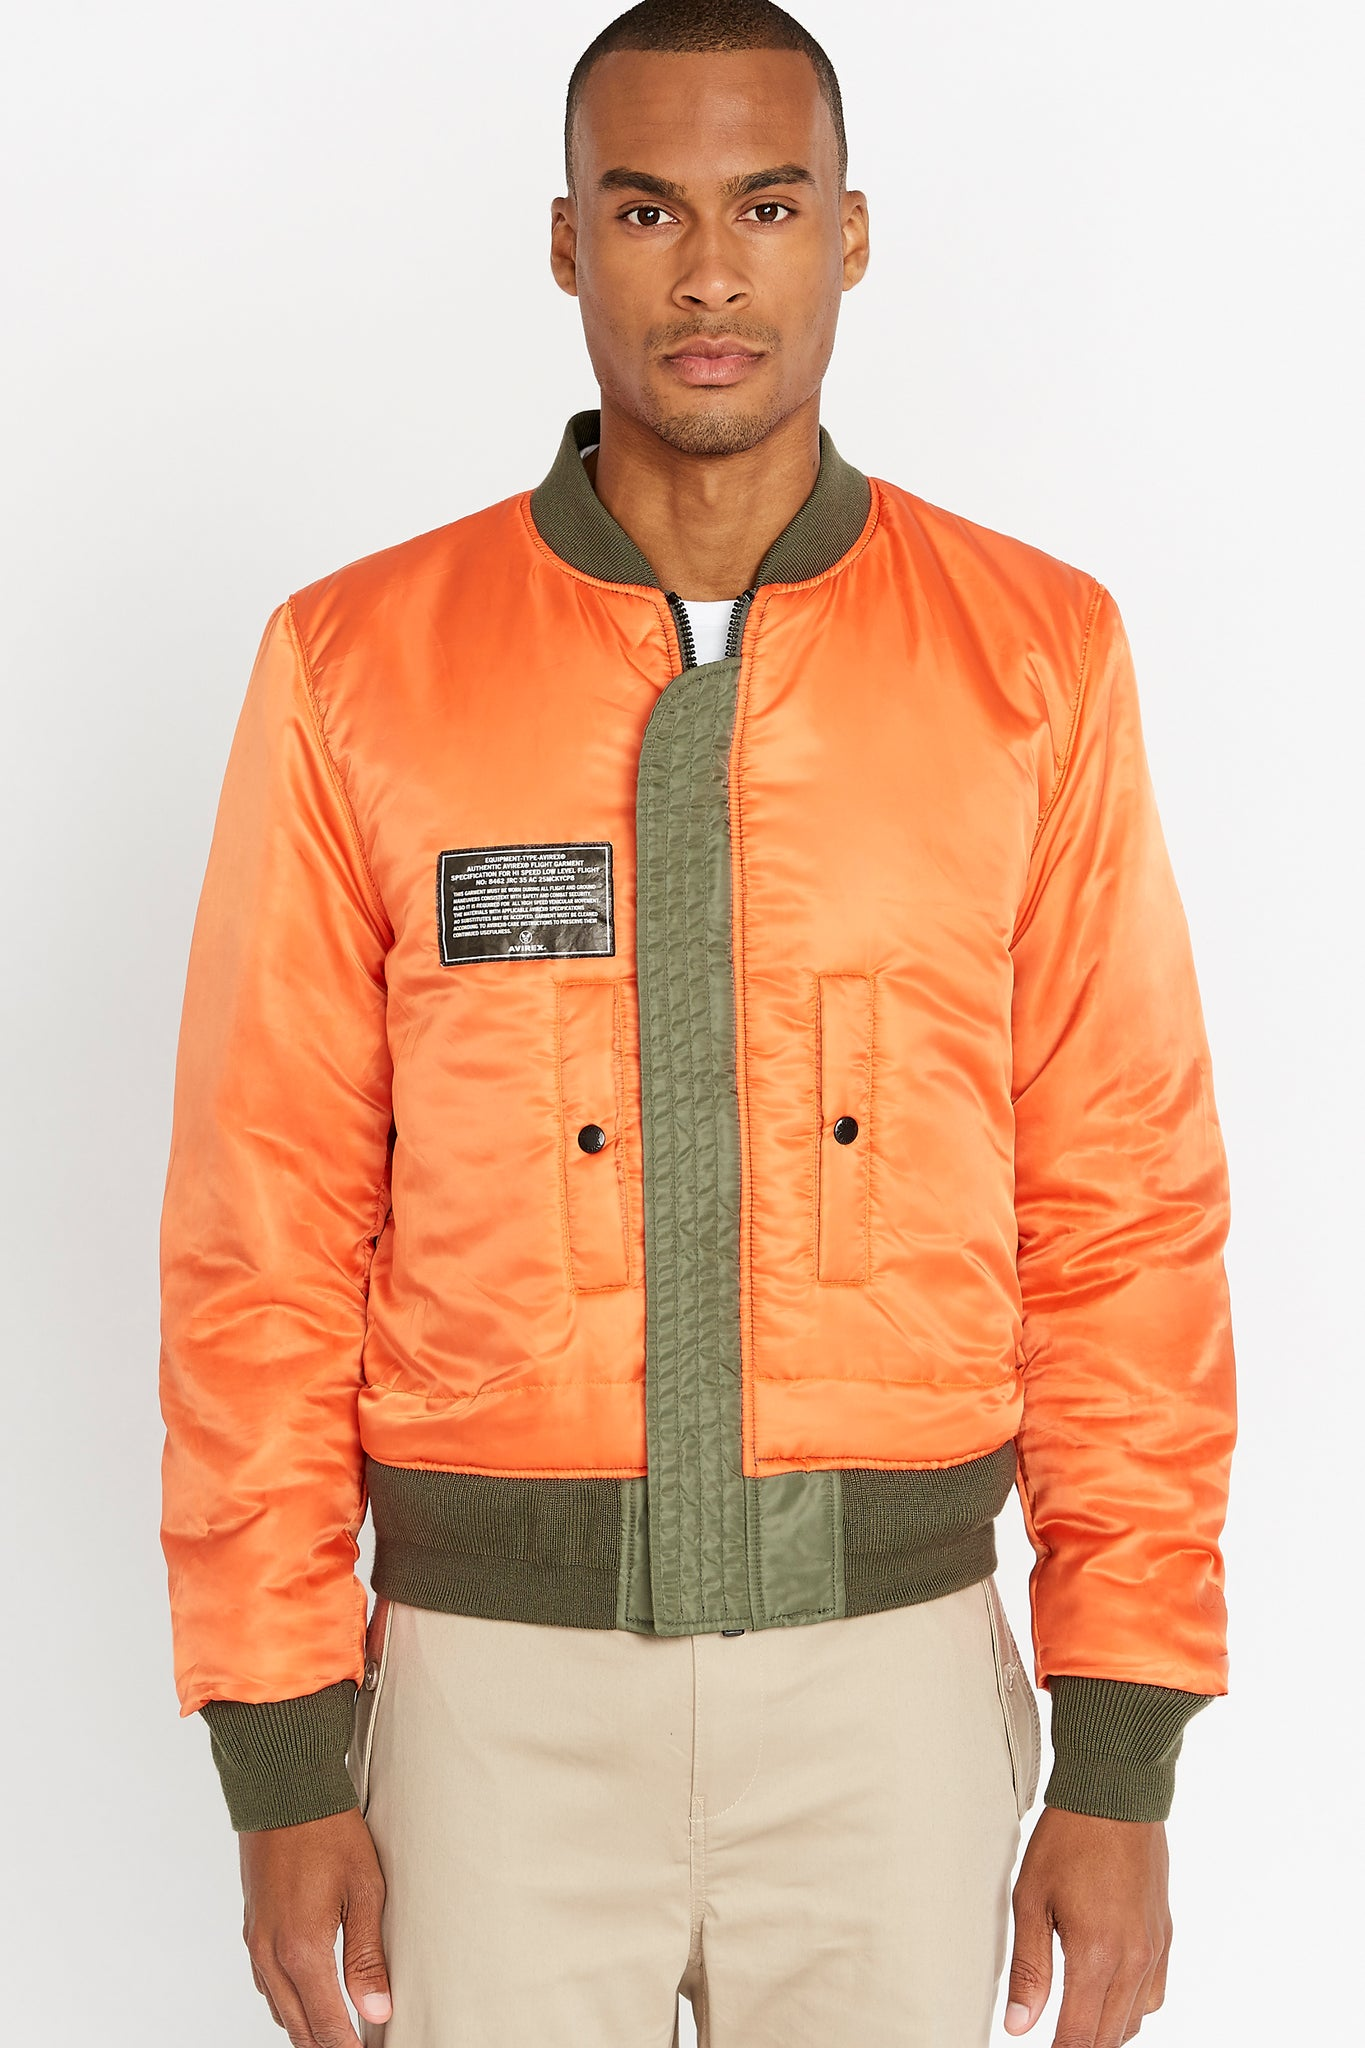 Front view of men wearing a fully zipped reversed orange aviation bomber nylon jacket with patch on right chest and two pockets